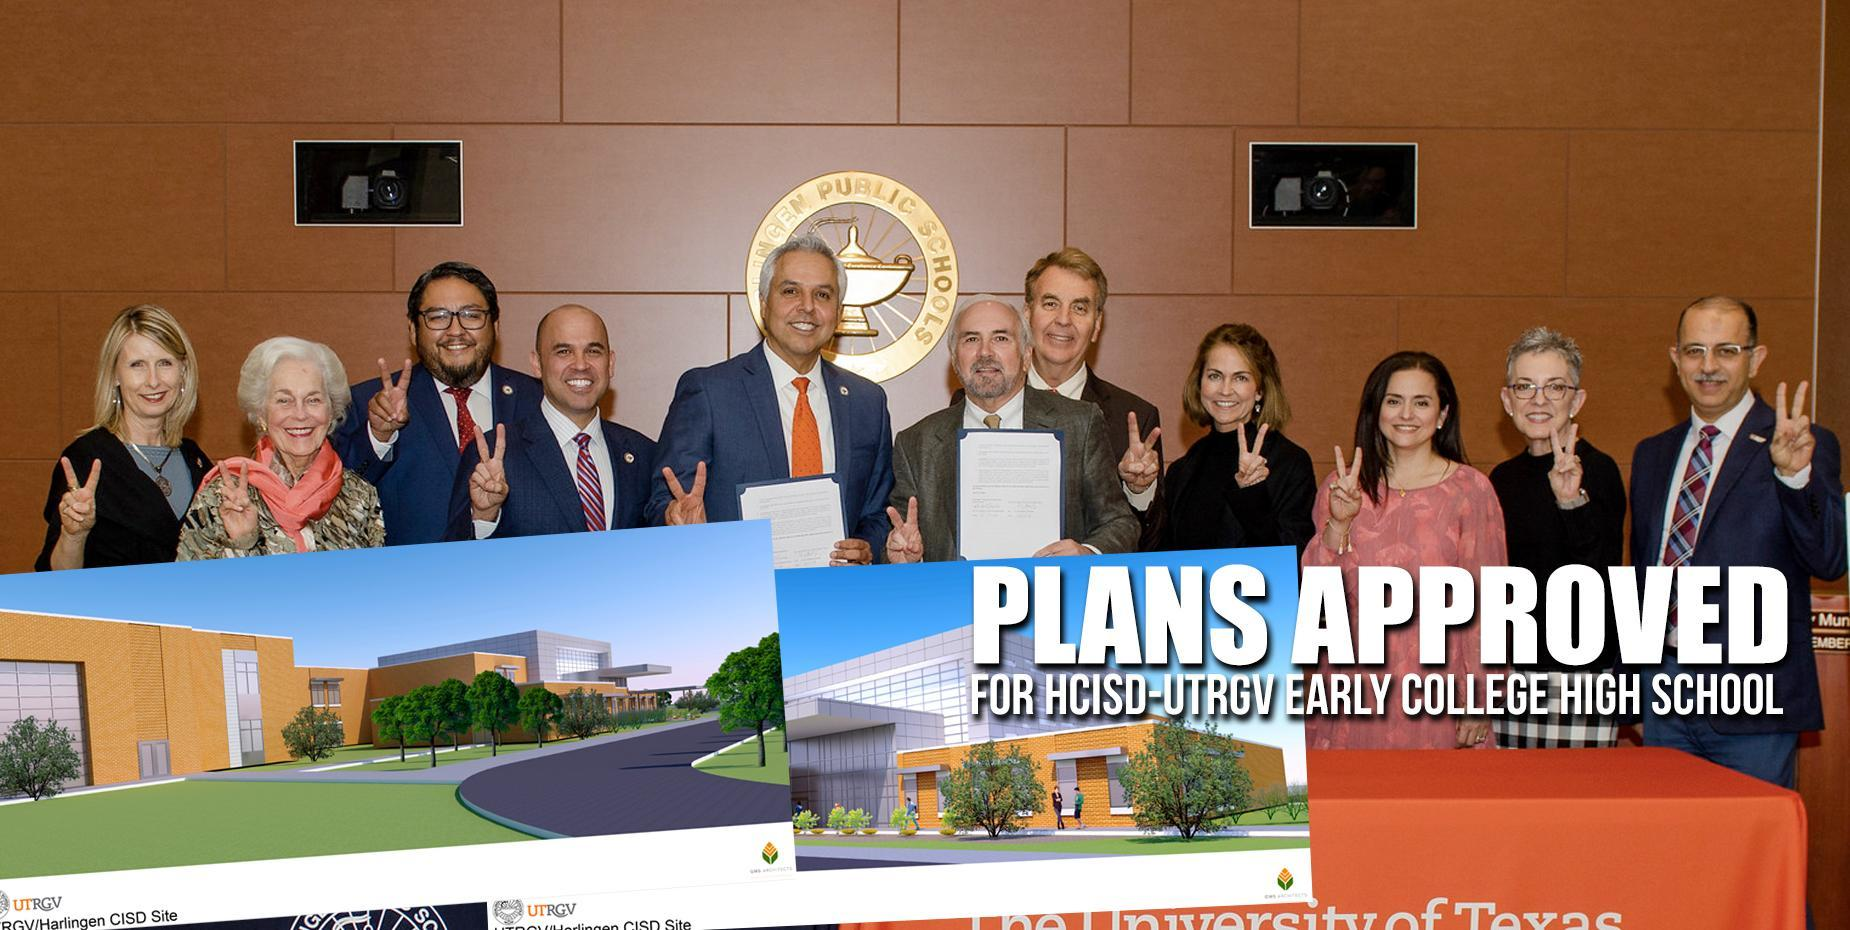 Plans approved for HCISD-UTRGV Early College High School